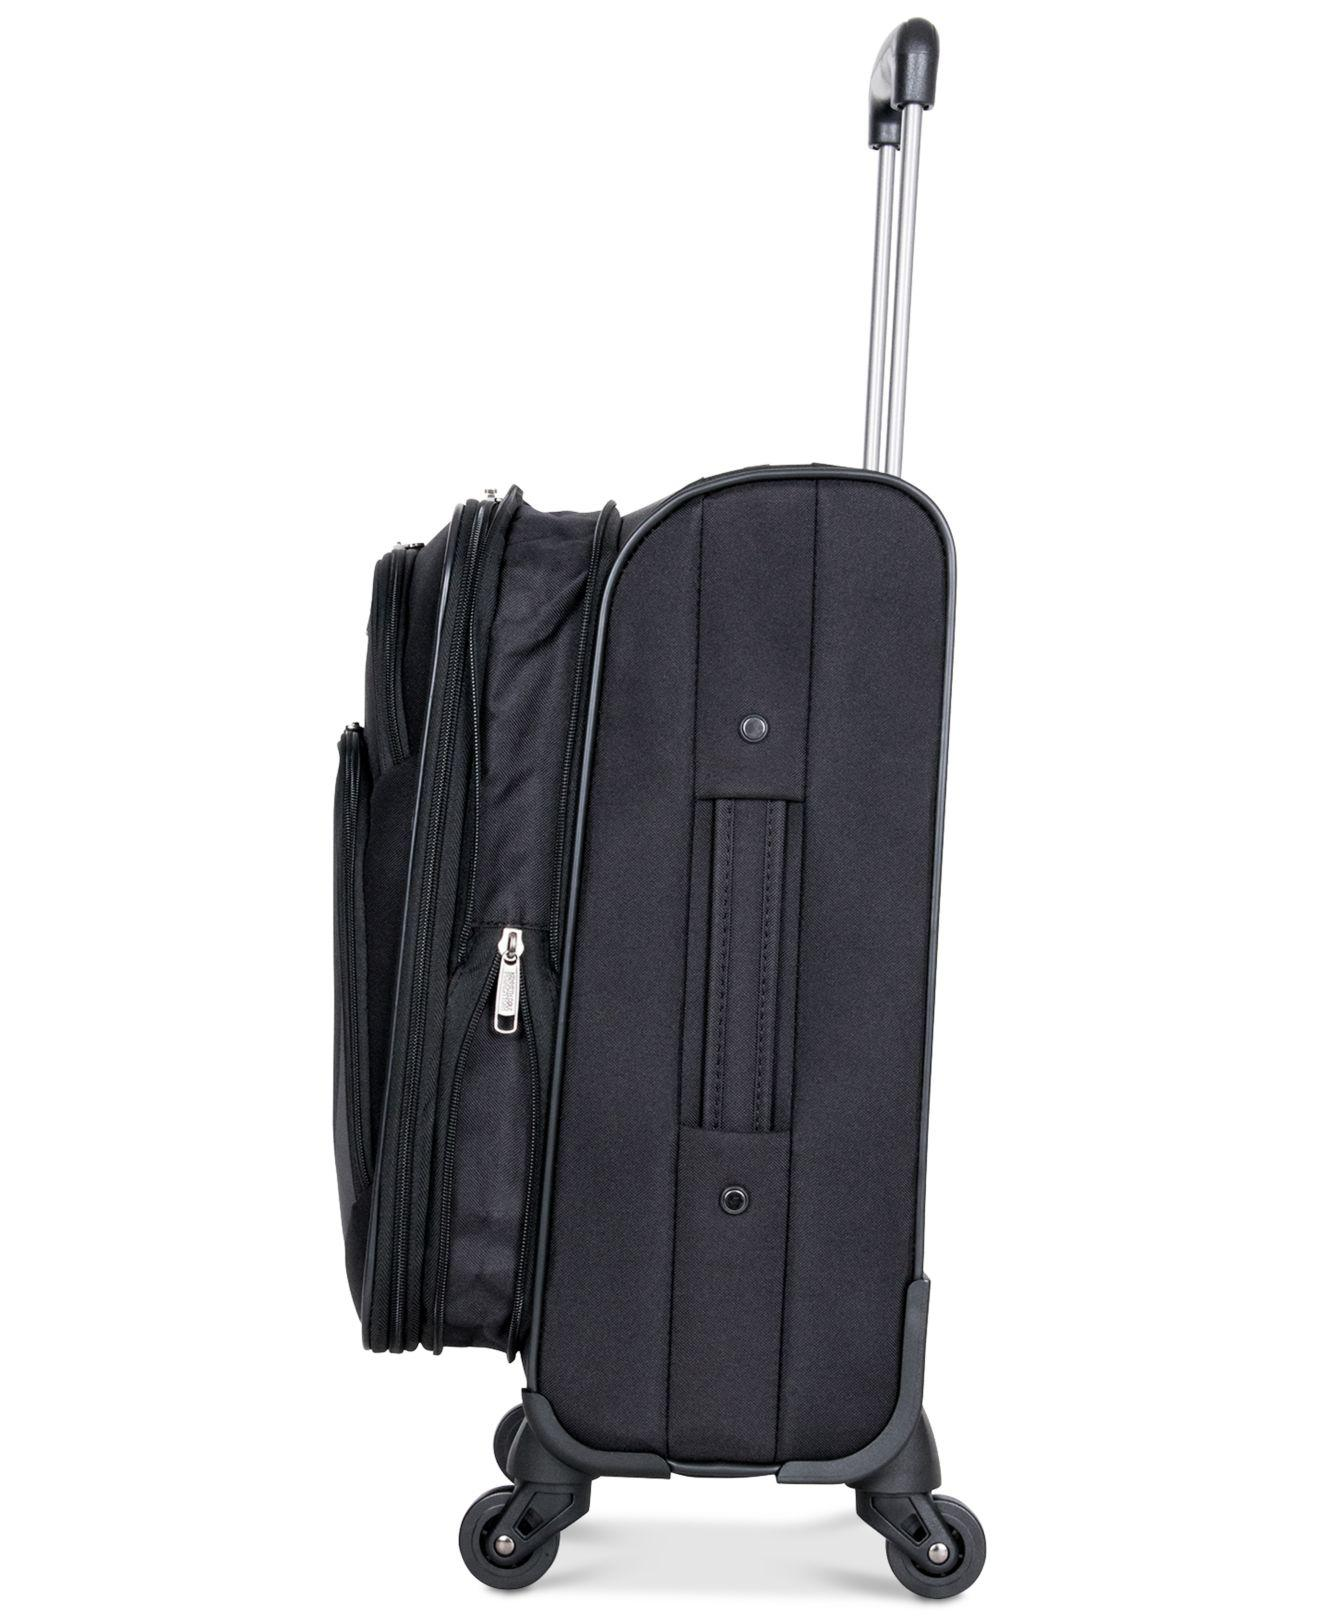 Lyst - Kenneth Cole Reaction Going Places 3-pc. Spinner Luggage Set ... c52715cc50840